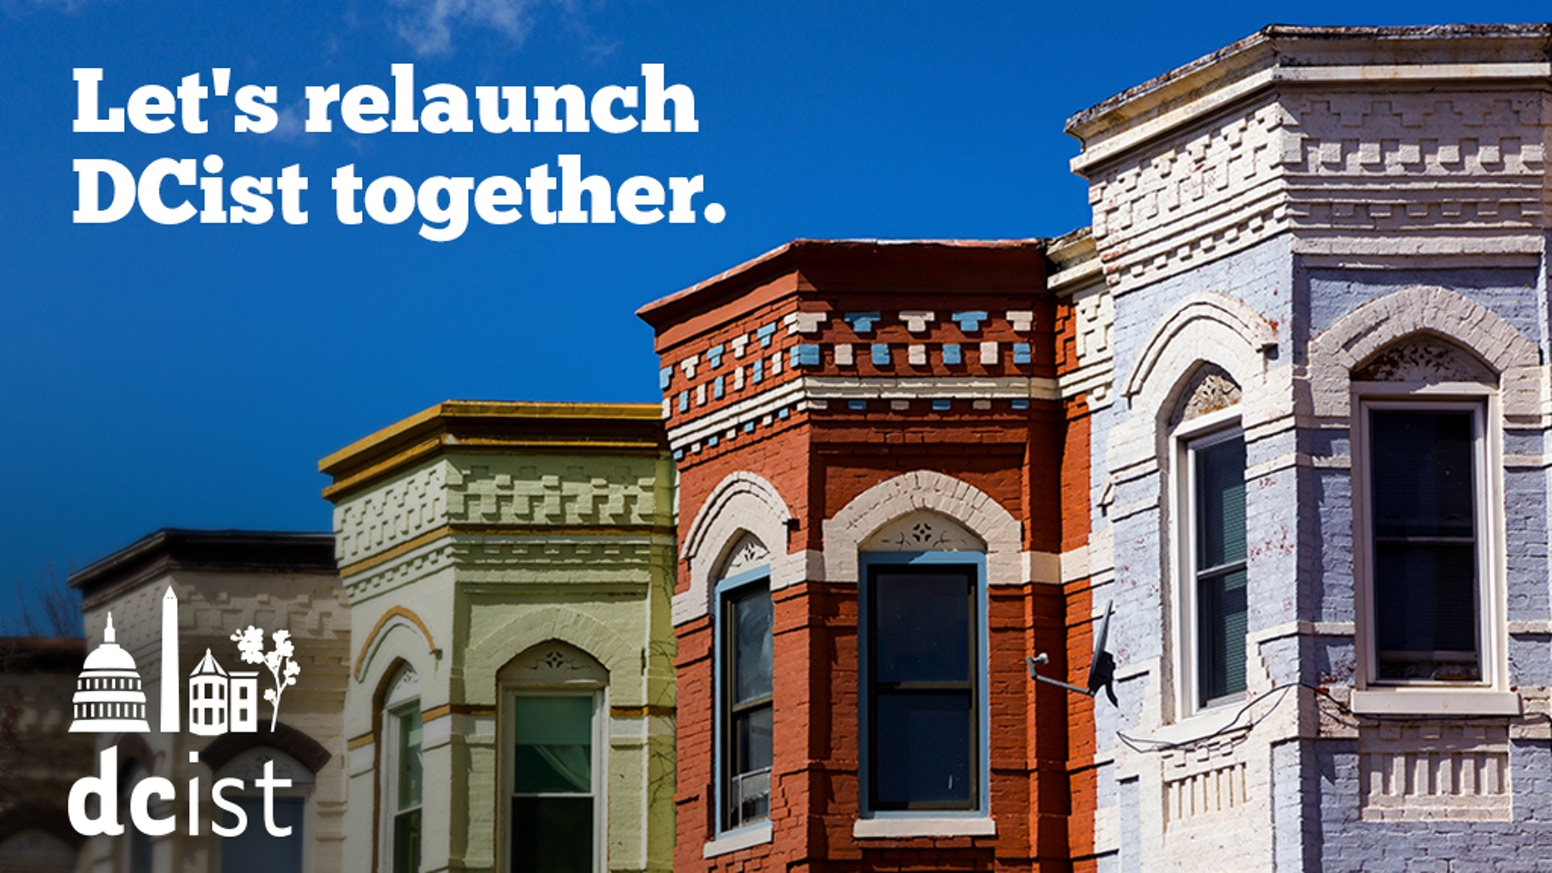 If you're looking to support us, stay tuned! We had a successful campaign and are excited to be a part of WAMU.